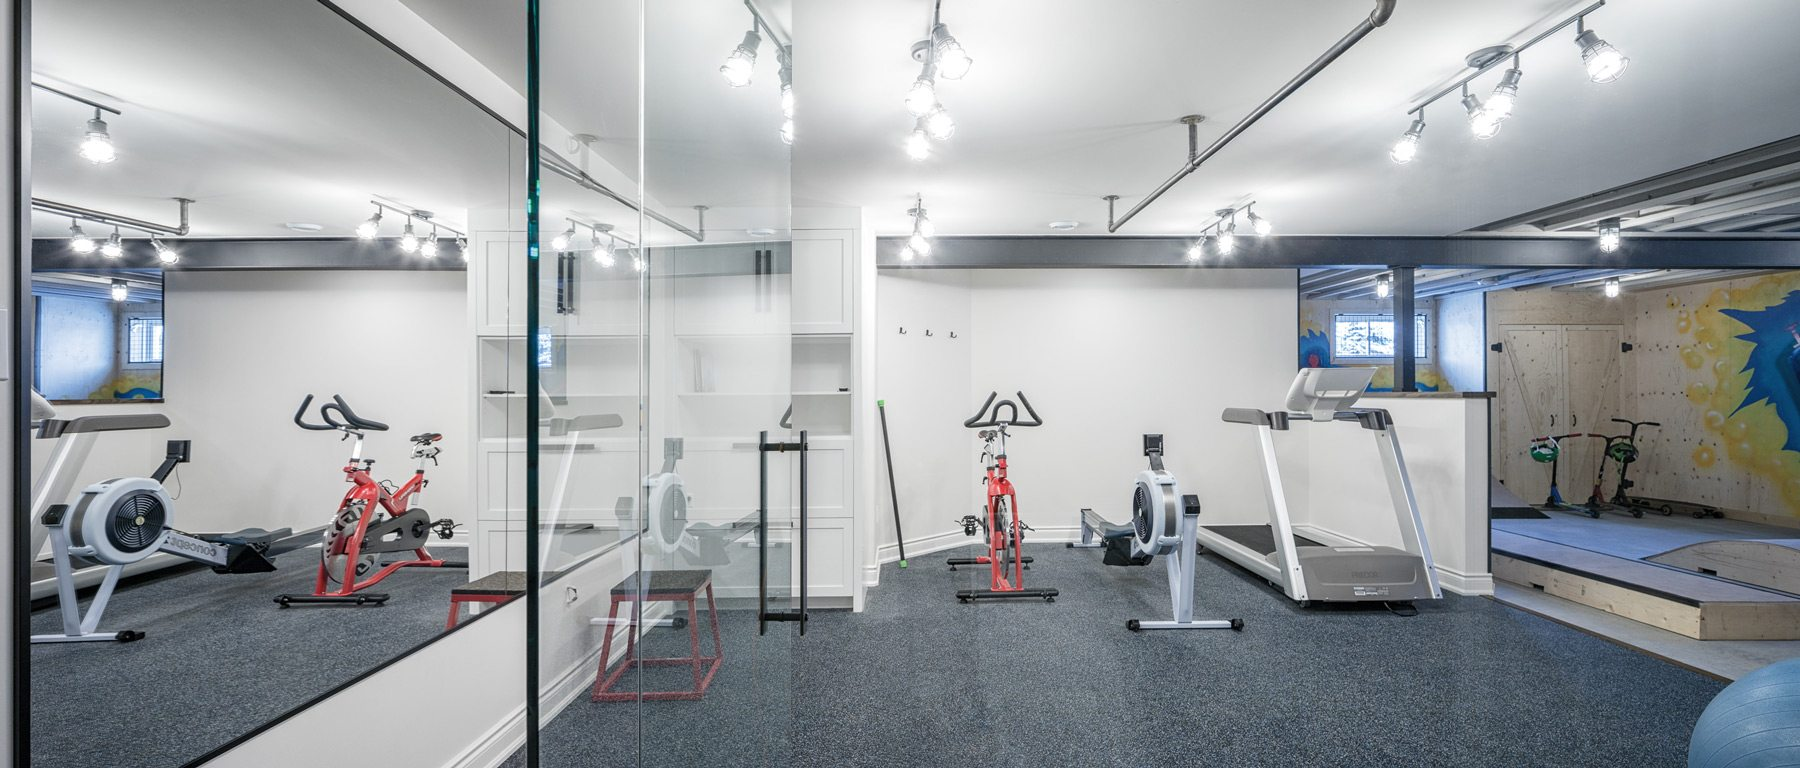 The scooter space is open to the home gym. Photo: Justin Van Leeuwen